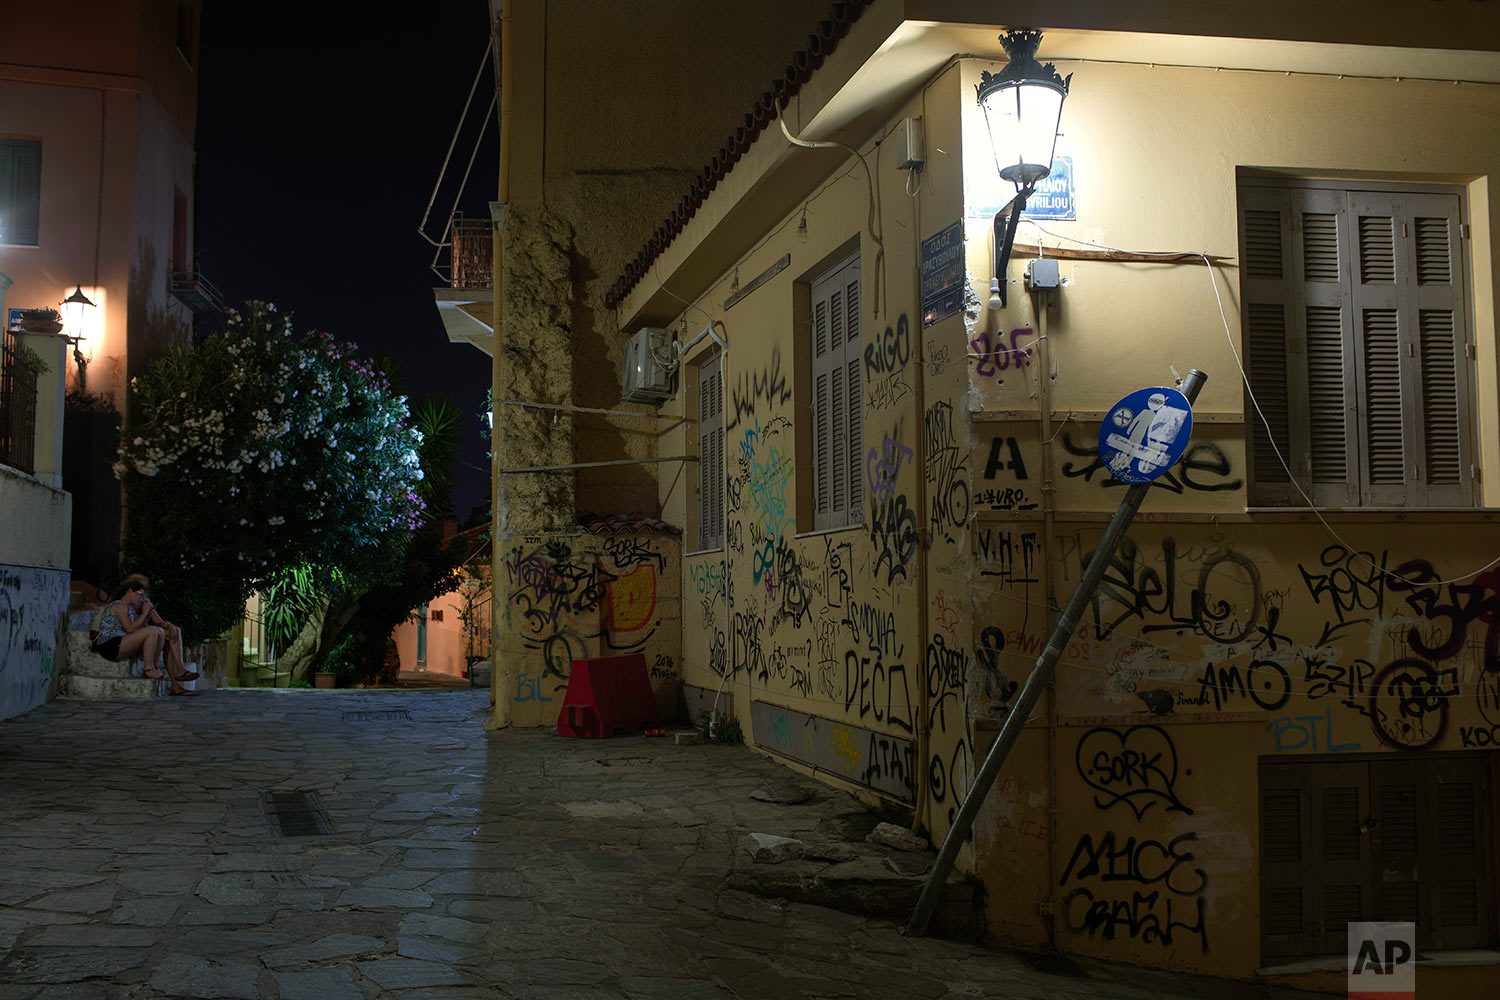 A shop is covered with graffiti in Psiri district , central Athens, July 4, 2019. (AP Photo/Petros Giannakouris)